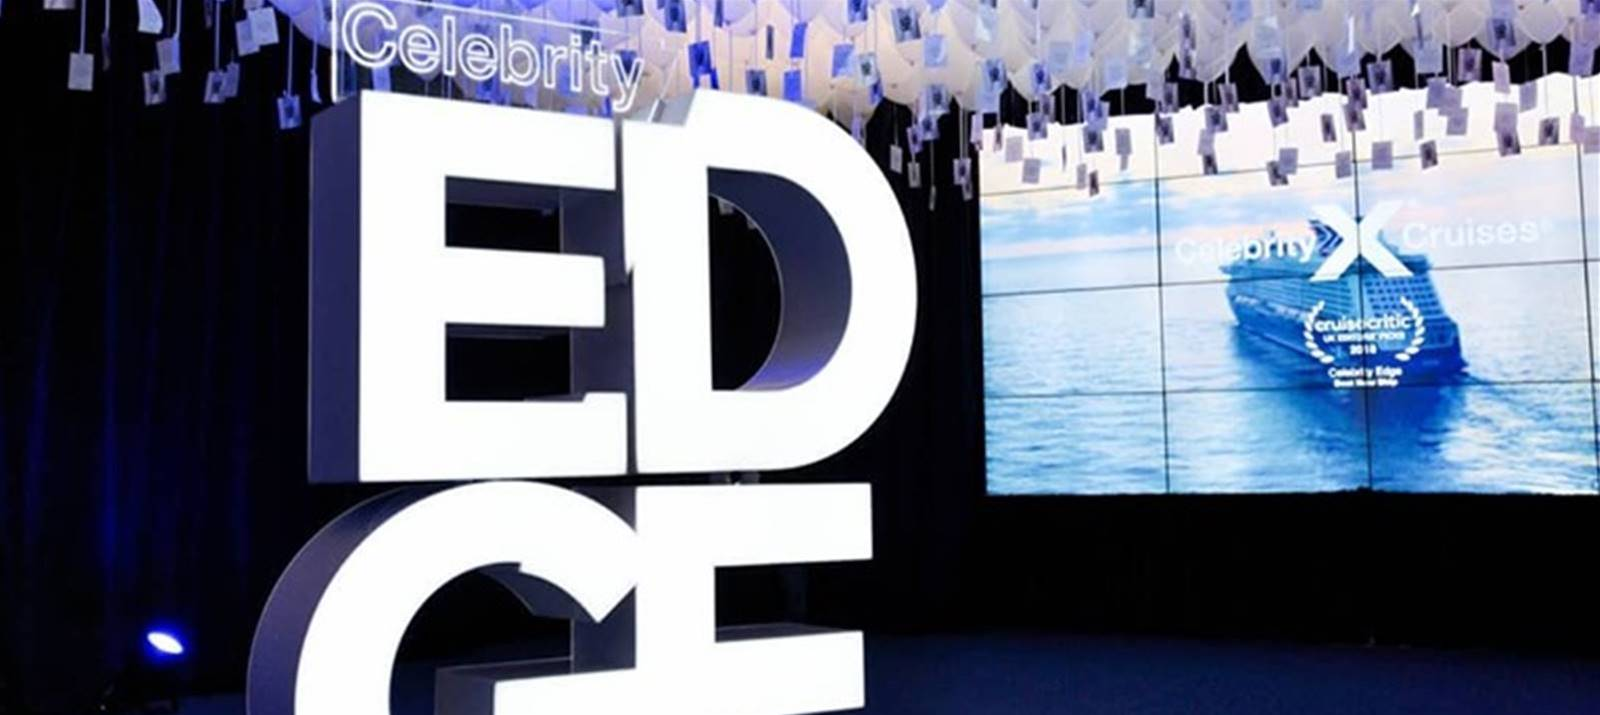 Illuminated built up sign for celebrity edge in Southampton